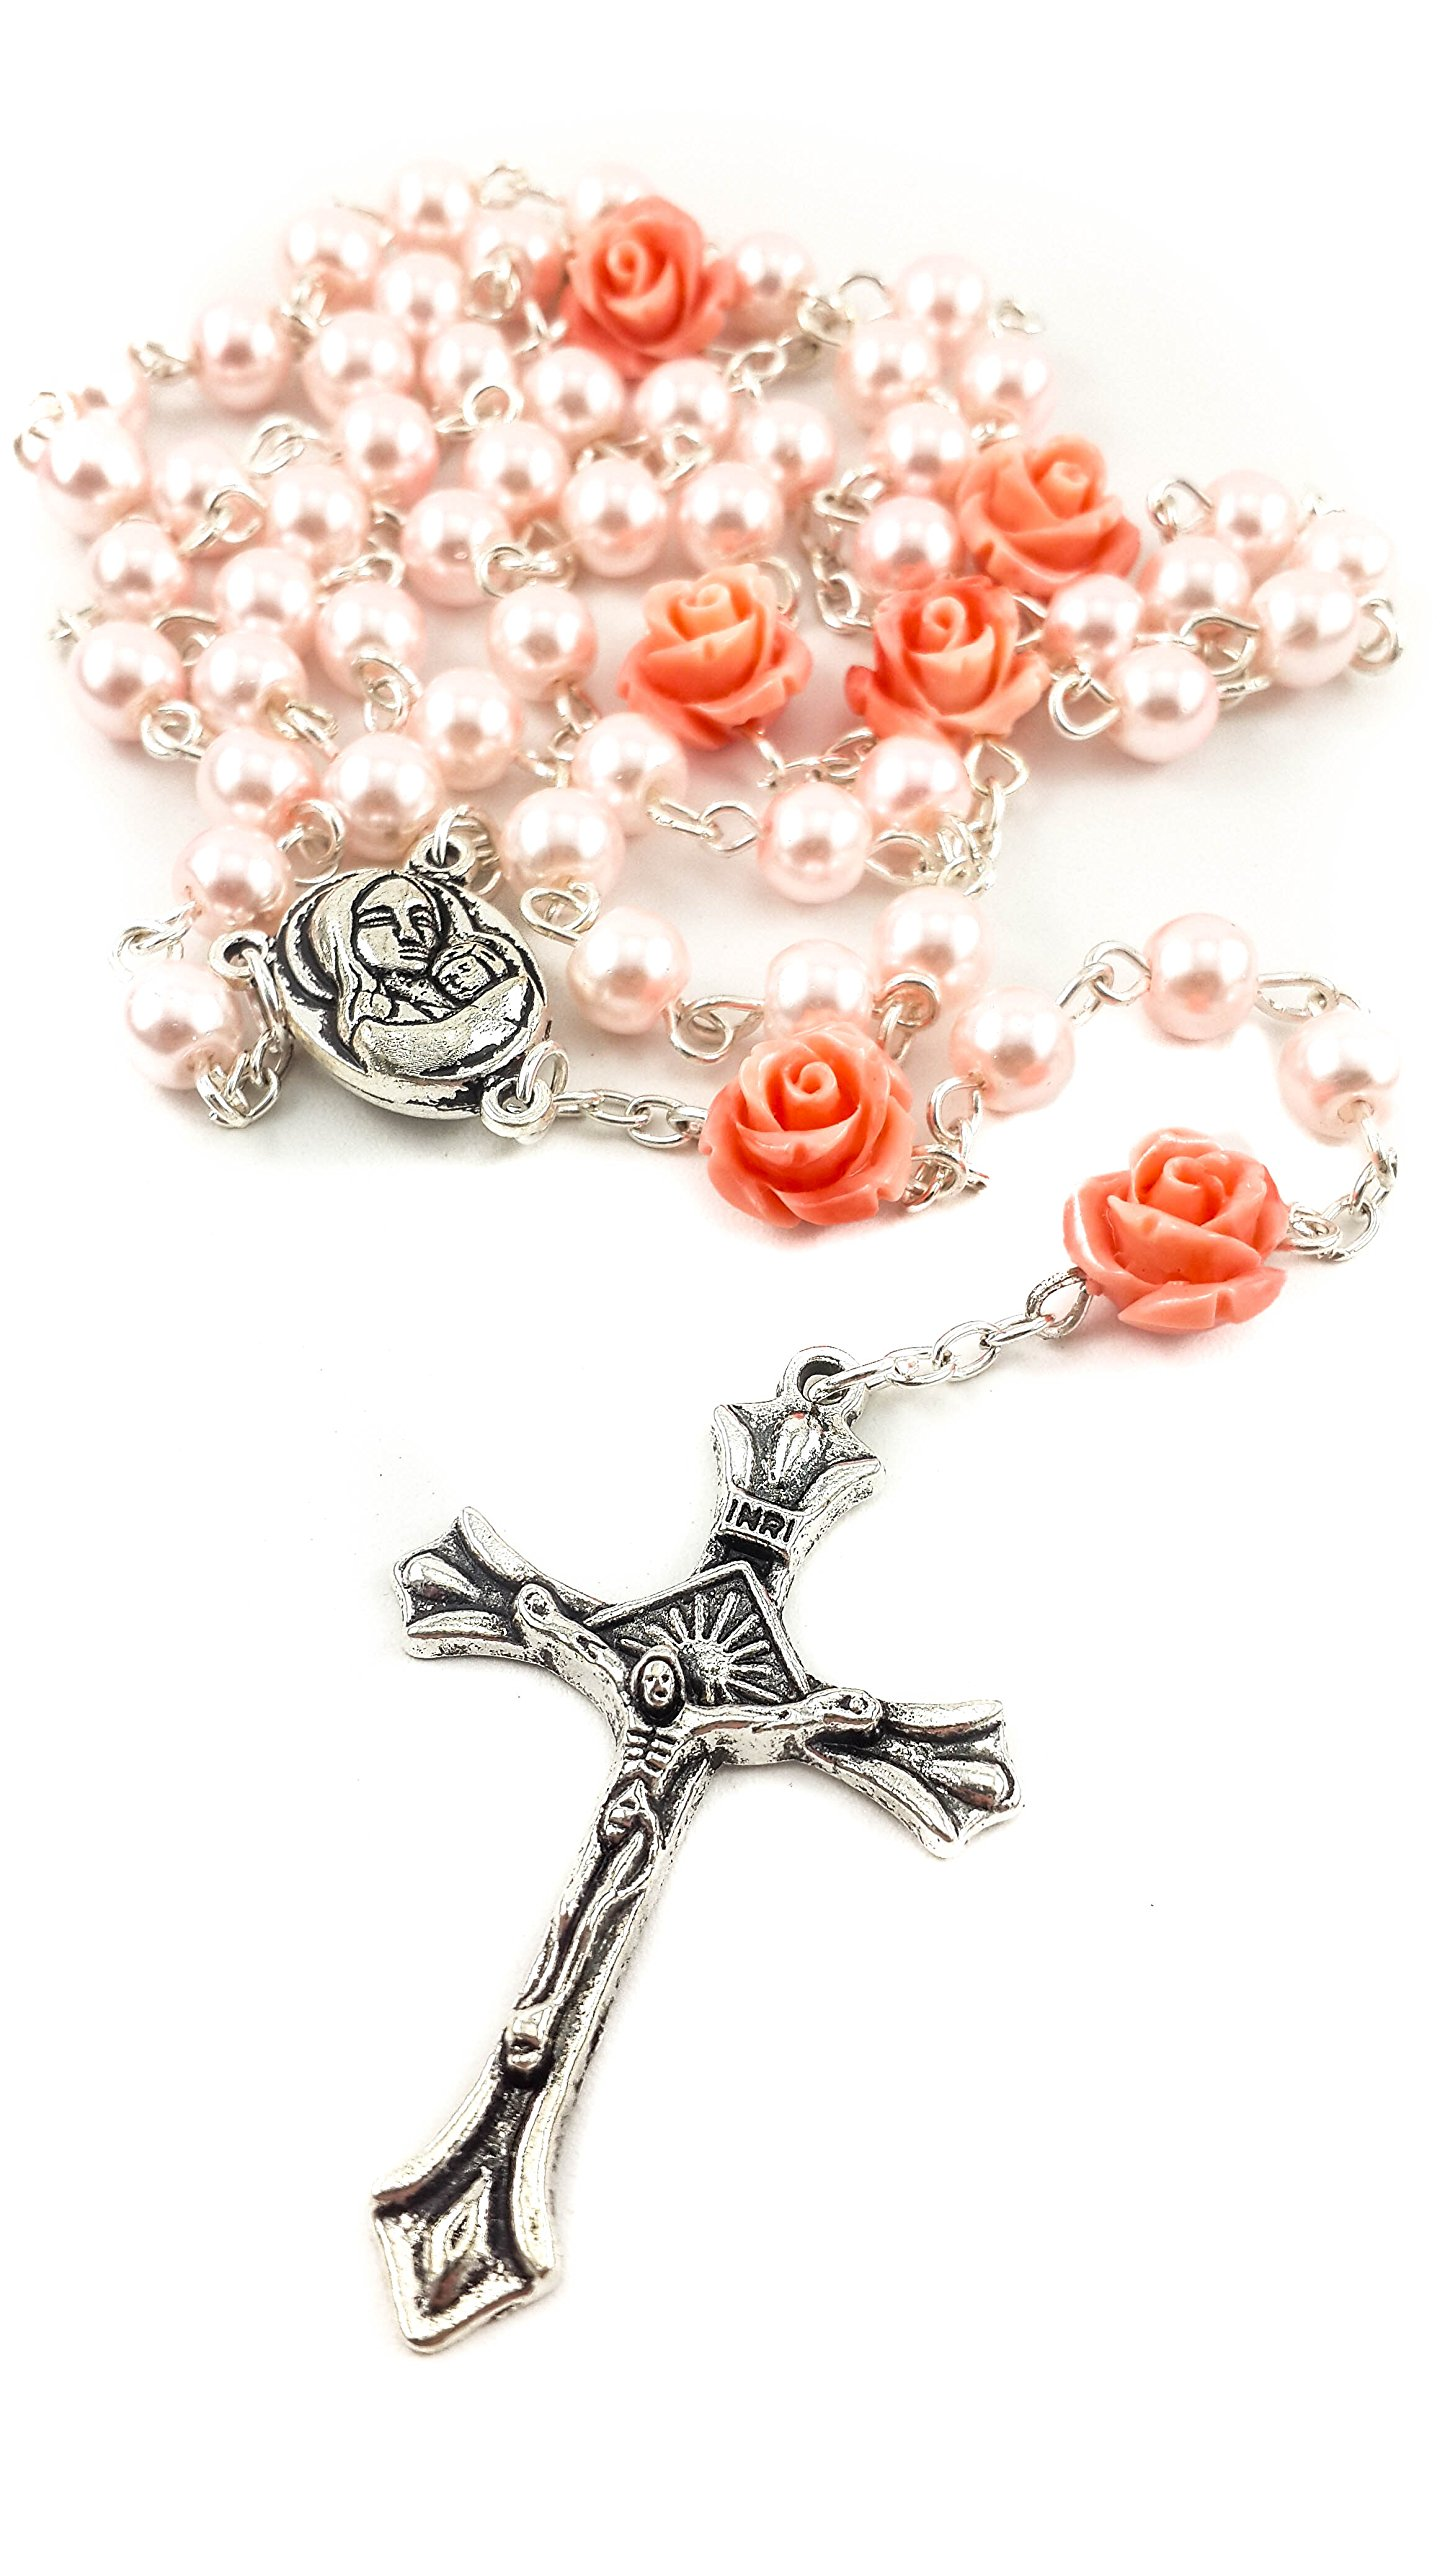 530c93412 Get Quotations · Catholic Pink Pearl Beads Rosary Necklace 6pcs Our Rose  Holy Soil Medal & Cross